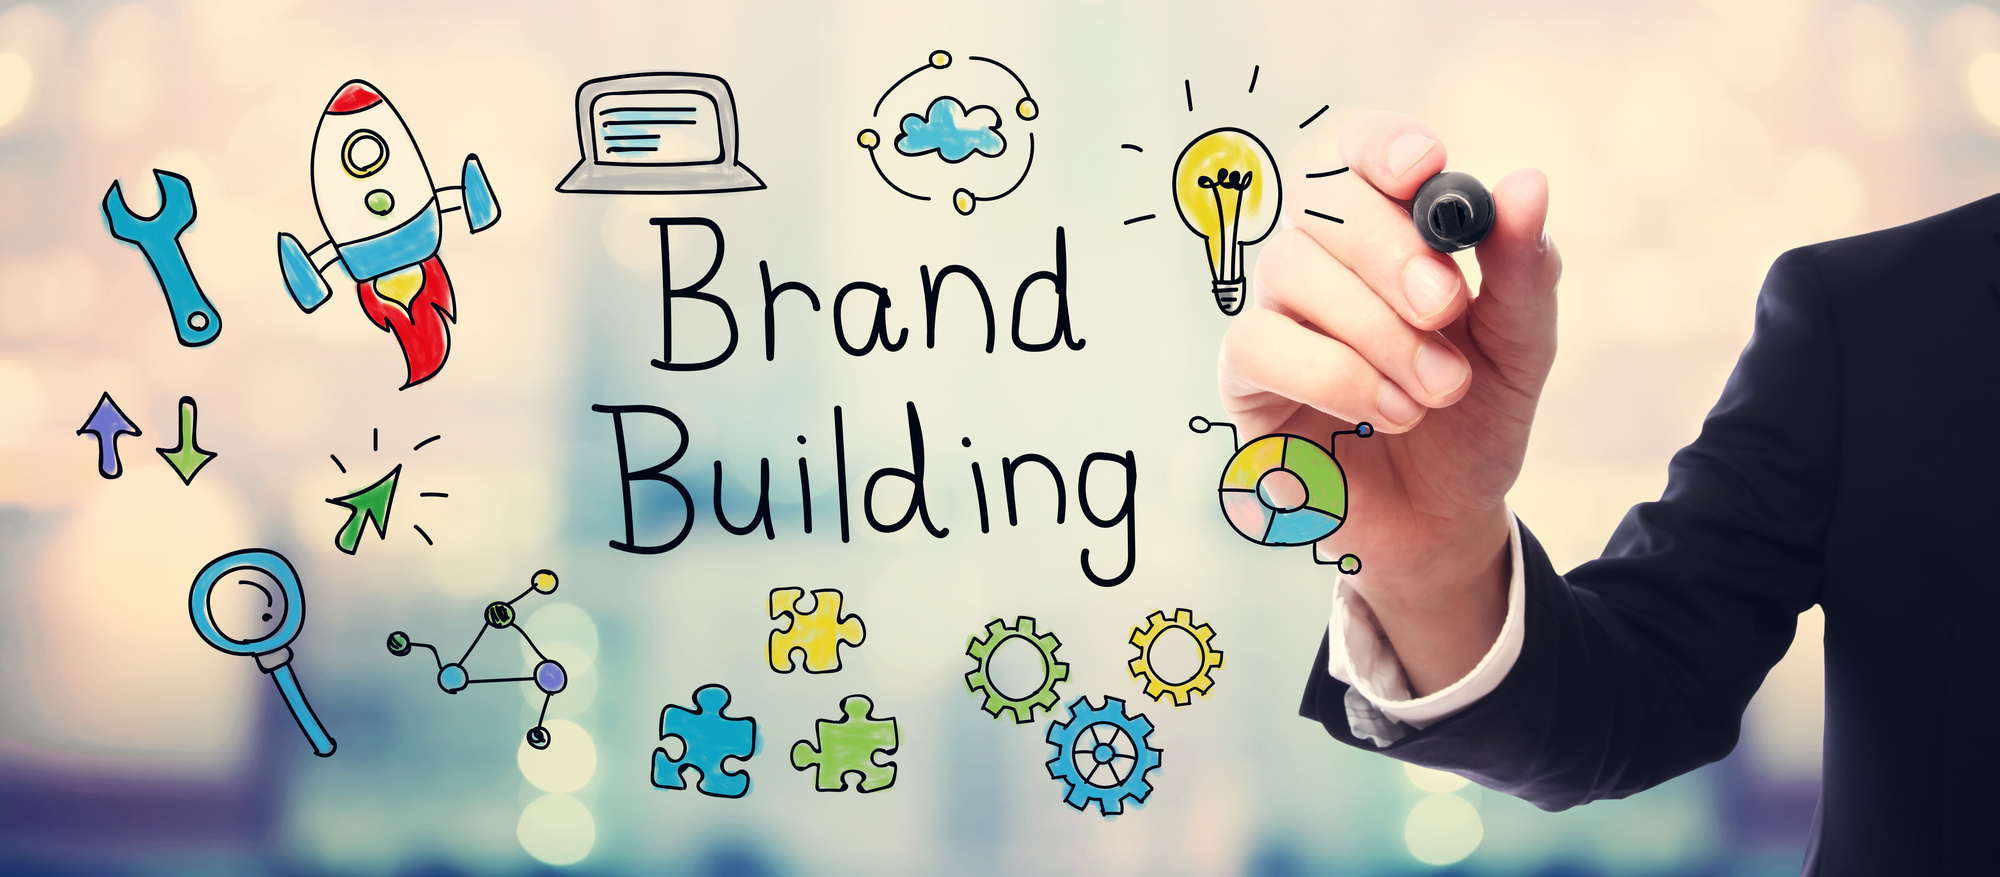 brand building text